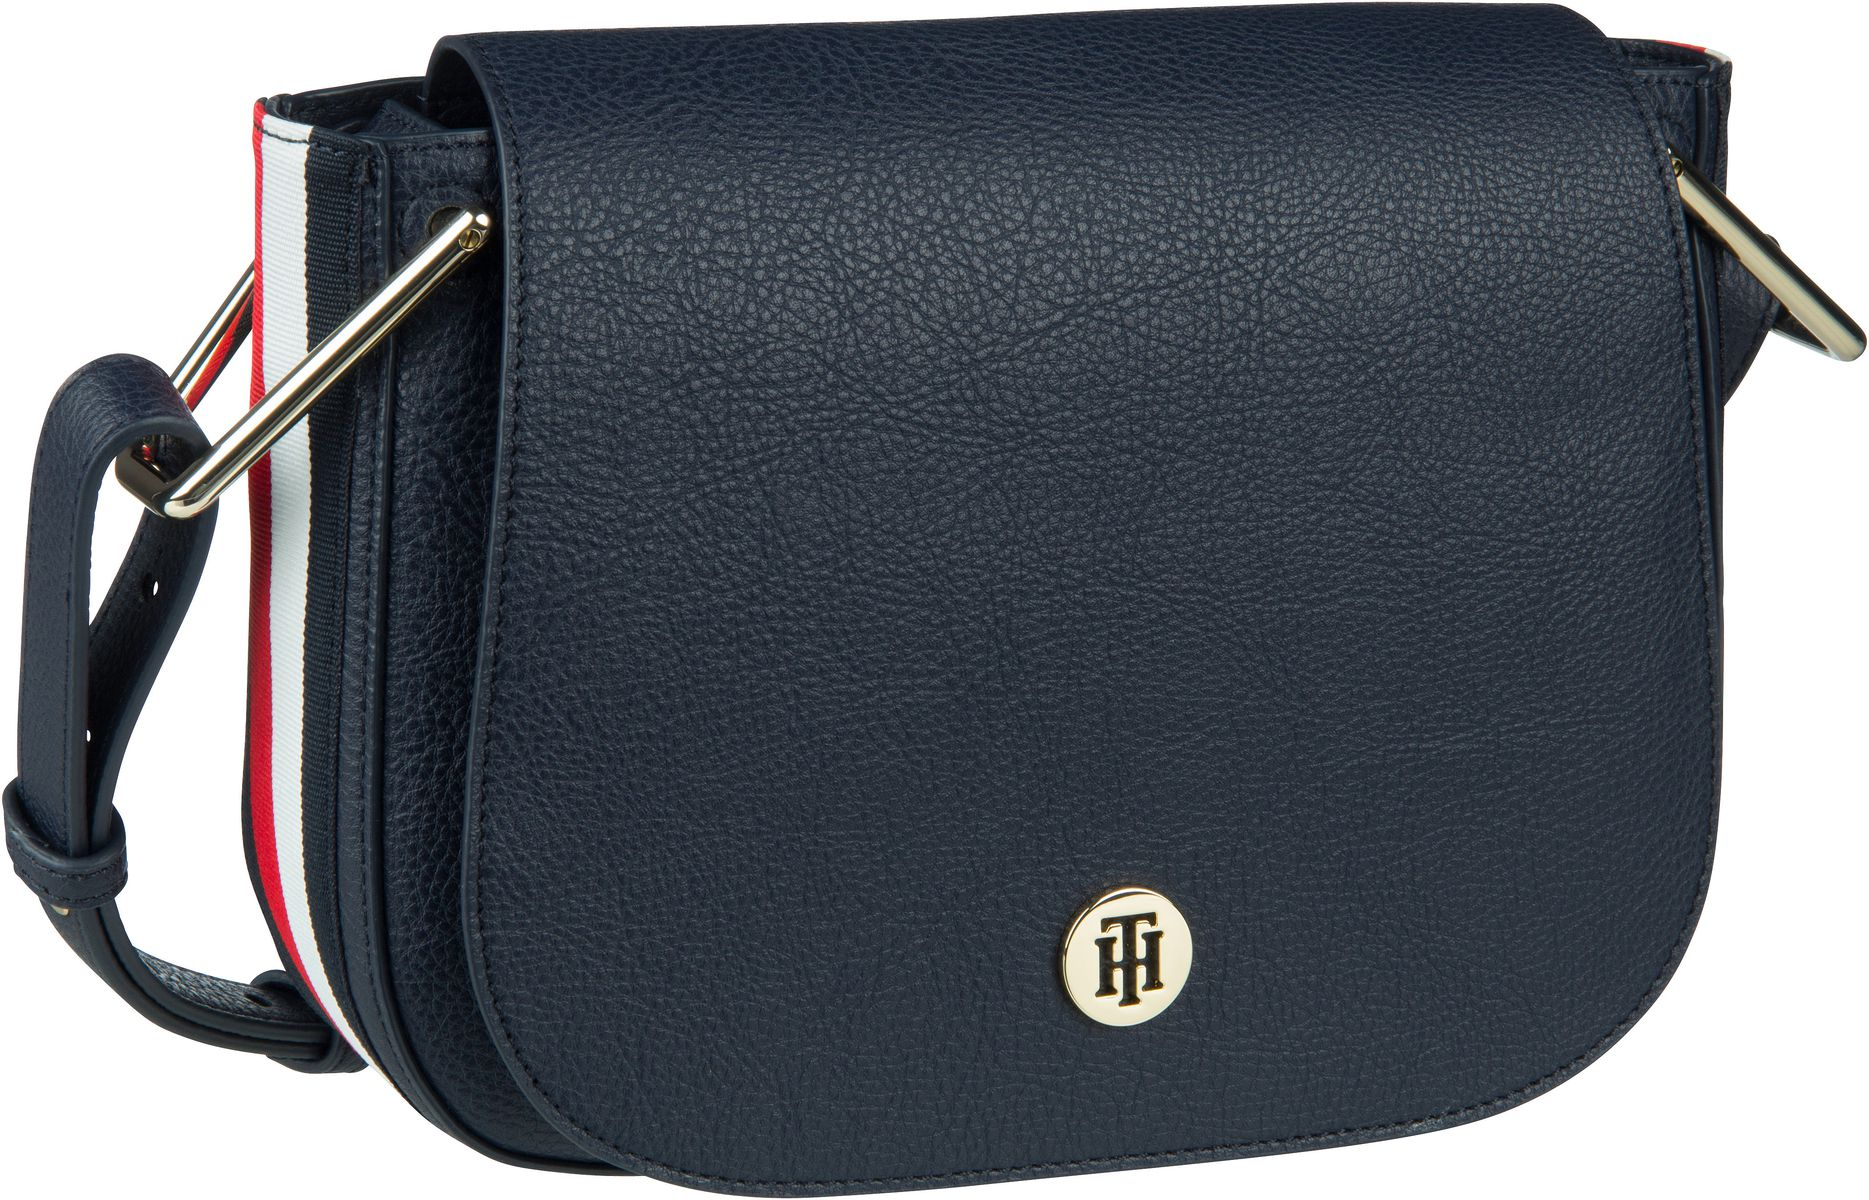 Umhängetasche TH Core Saddle Bag Corporate